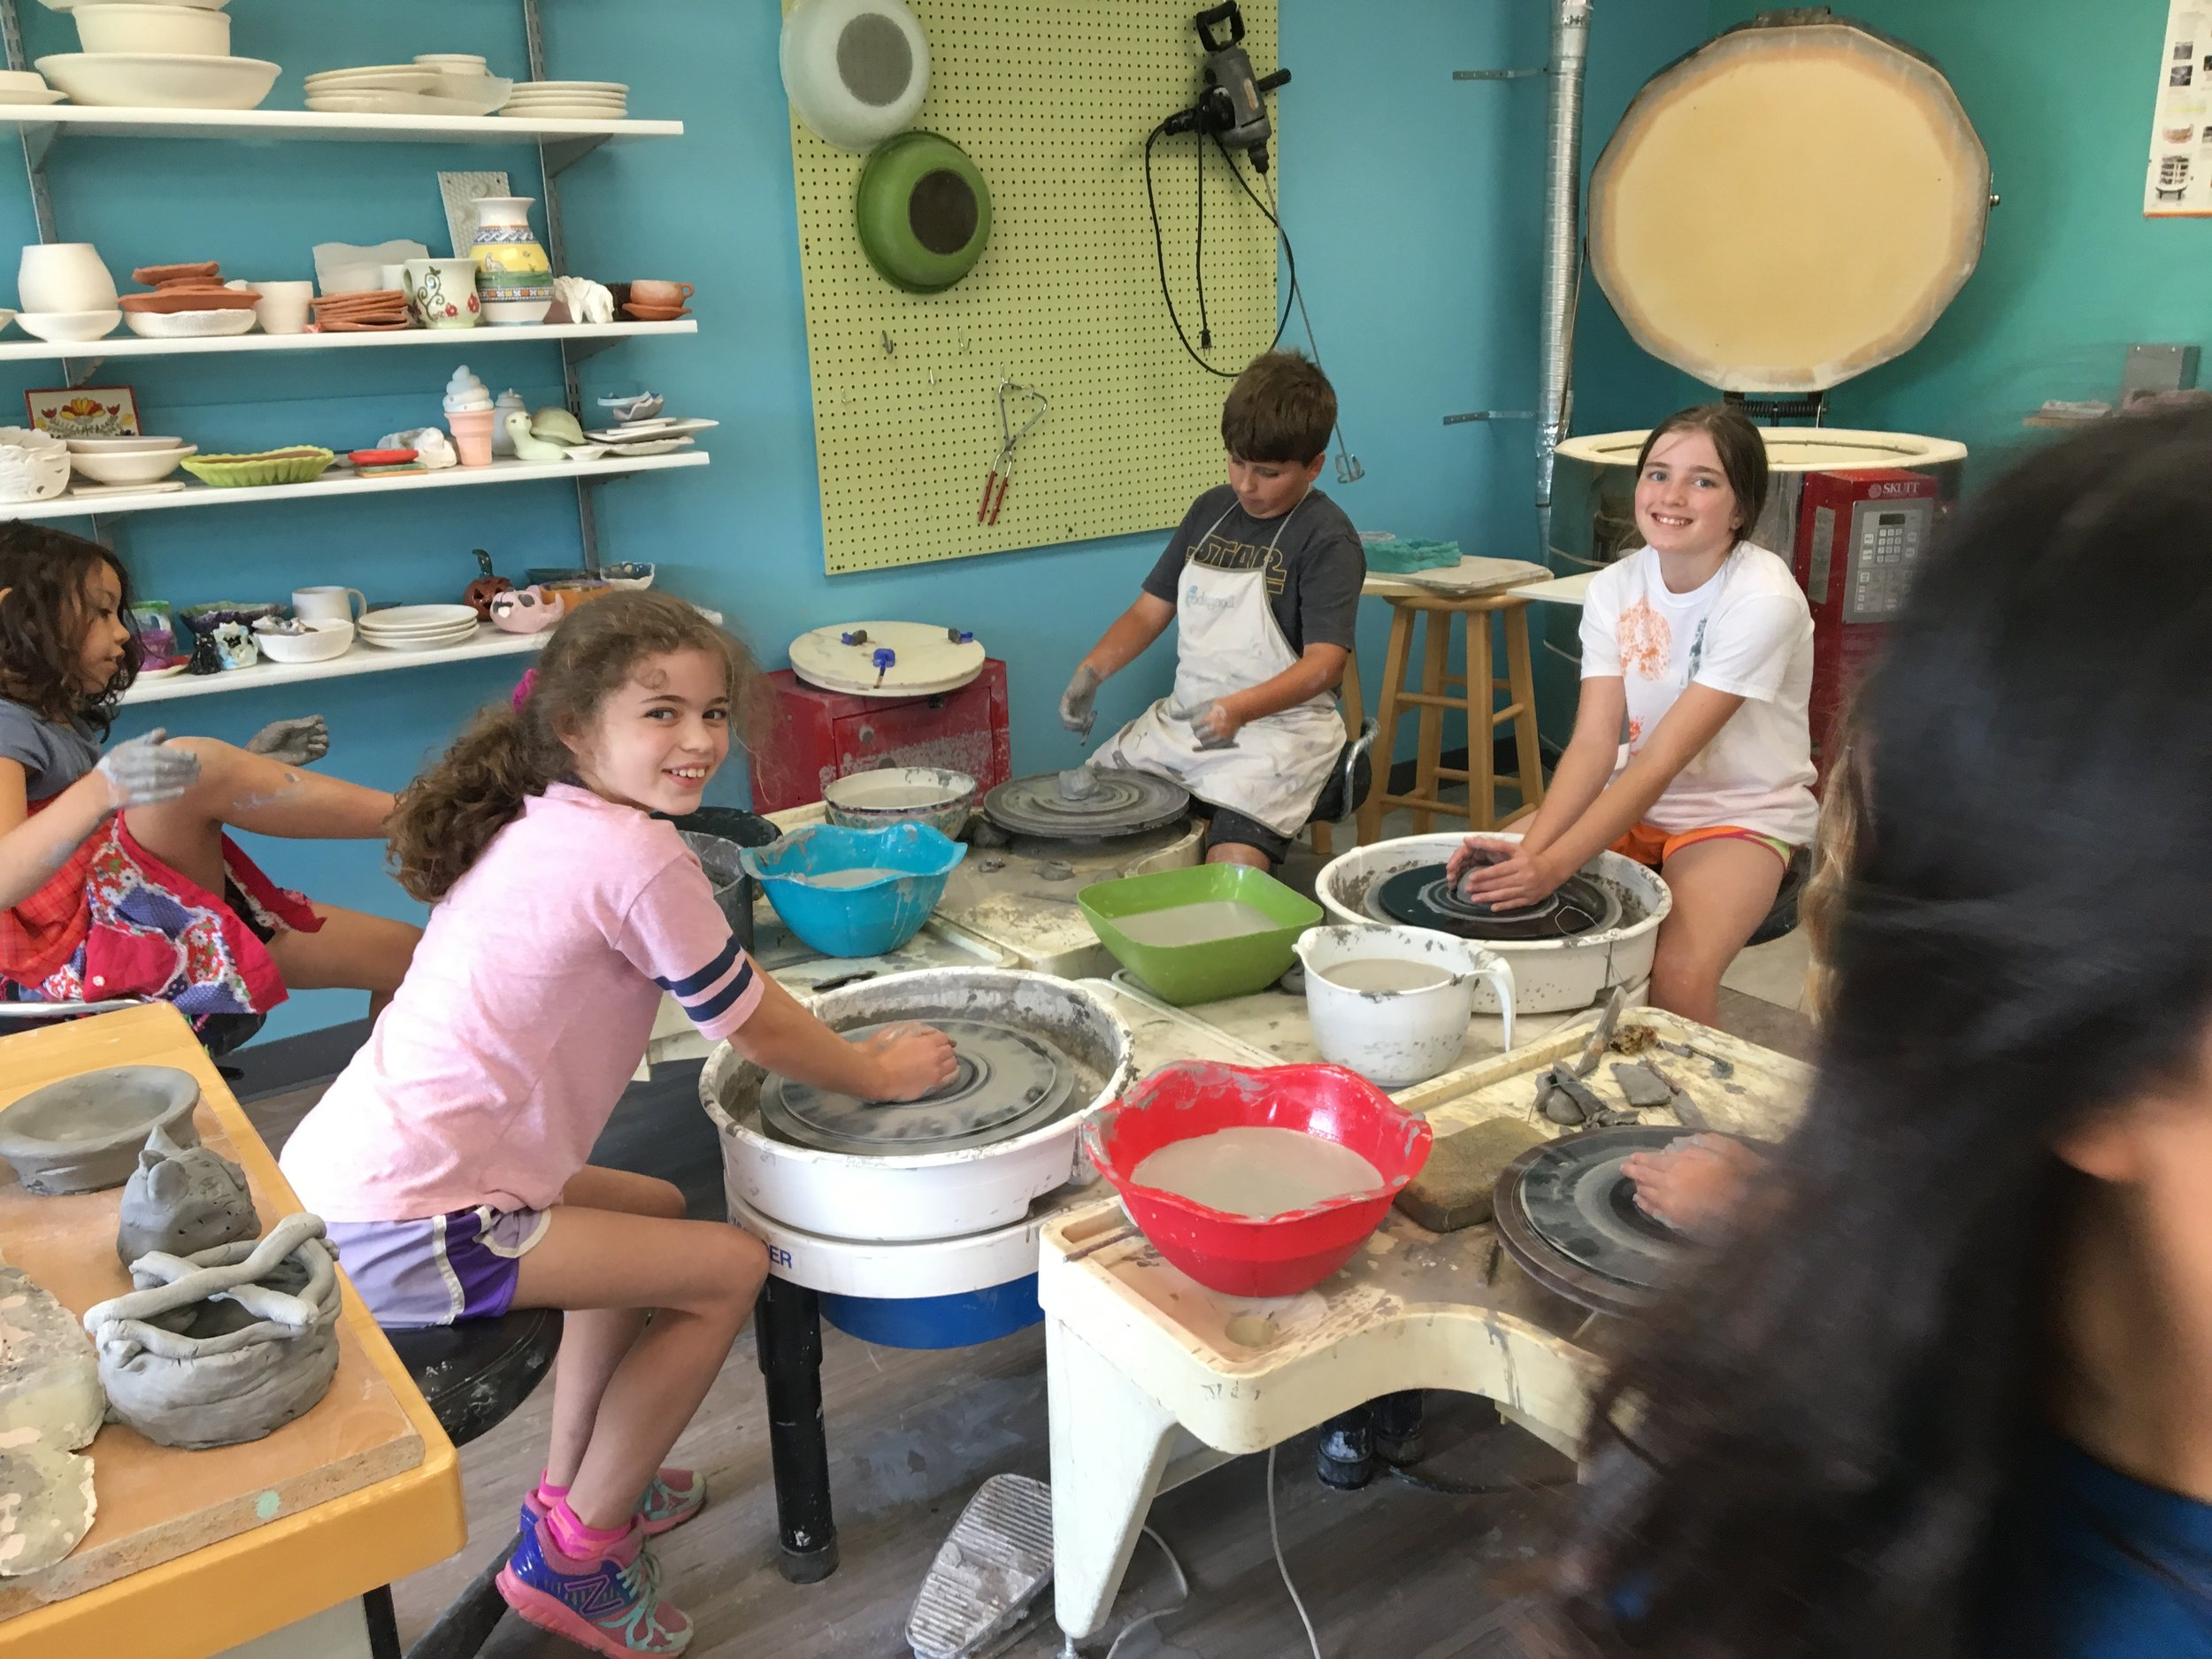 Youth Classes, Camps and events - Offering youth classes, summer camps, MCCSC day camps (on no school days) and pizza pottery nights.